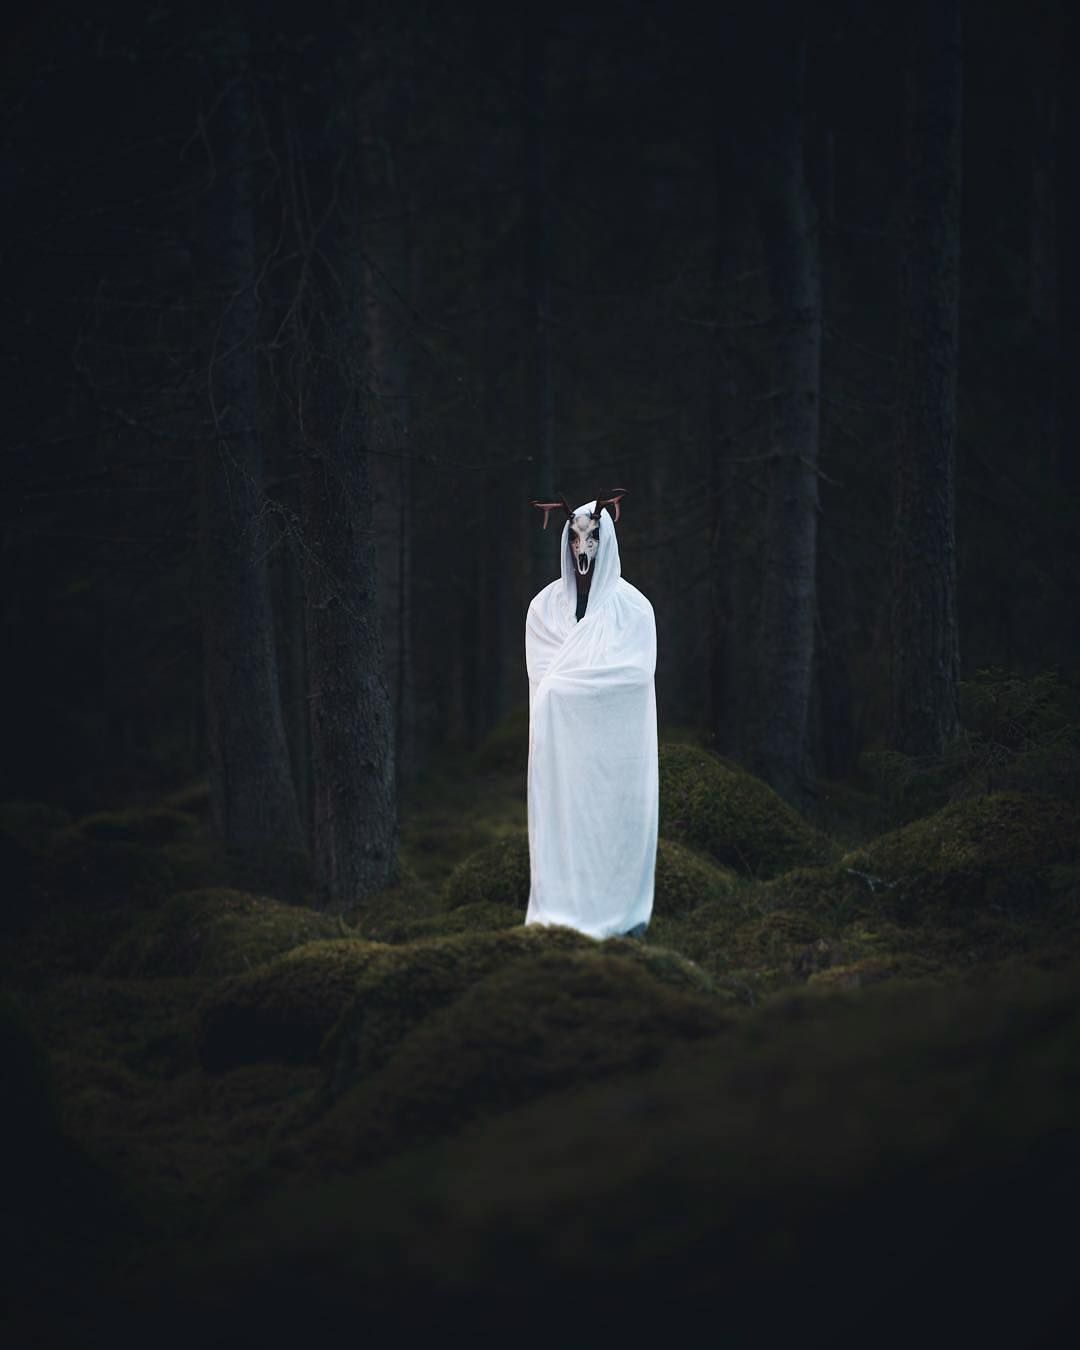 Nordic Creatures On Instagram And Into The Forest I Go